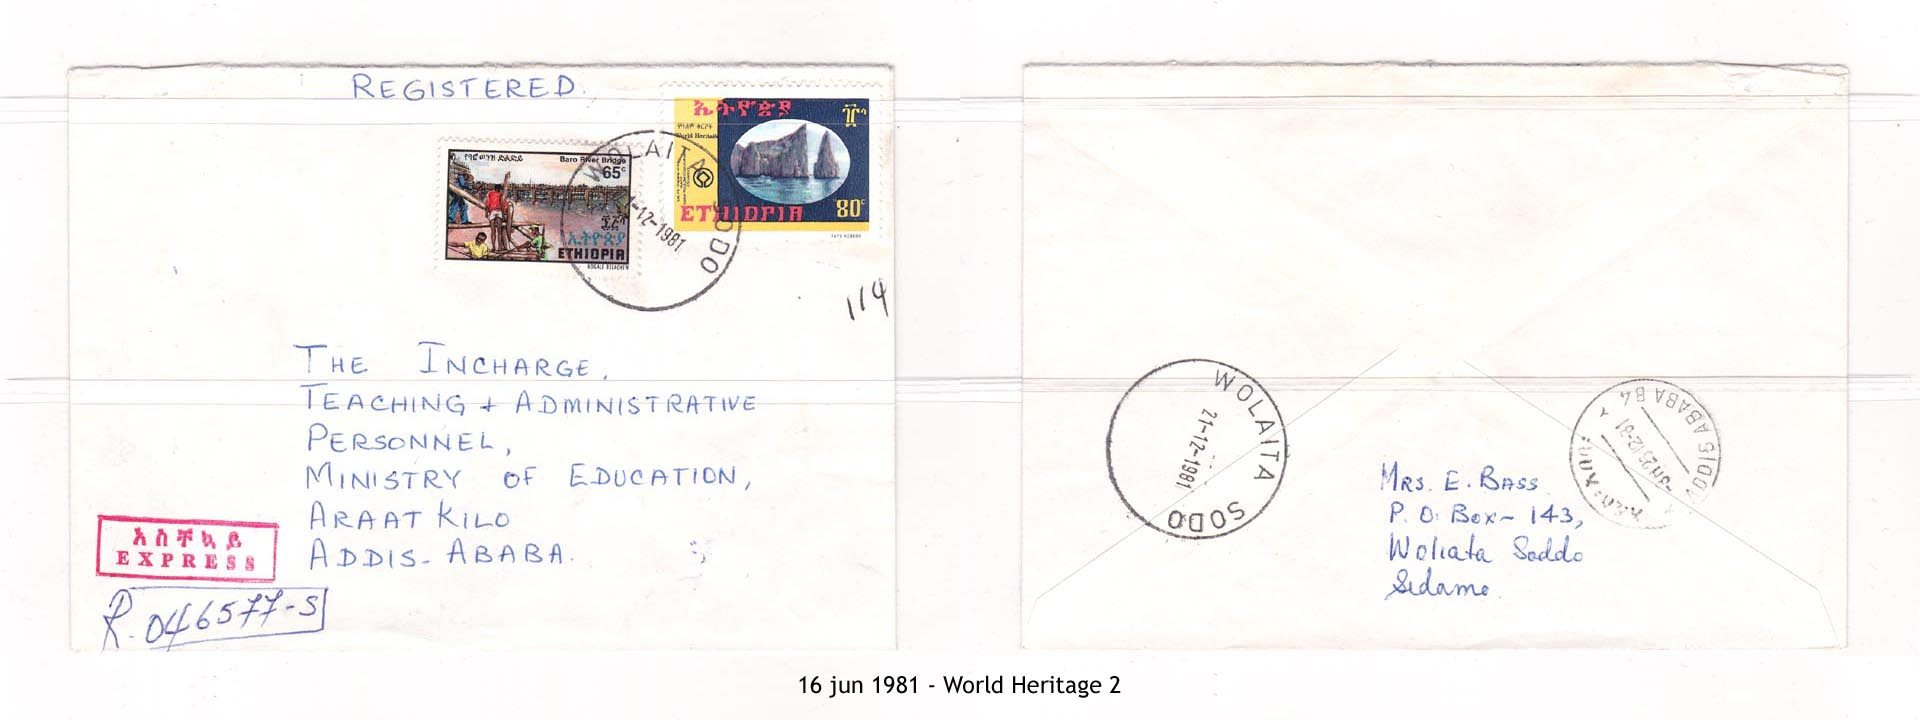 19810616 - World Heritage 2 z